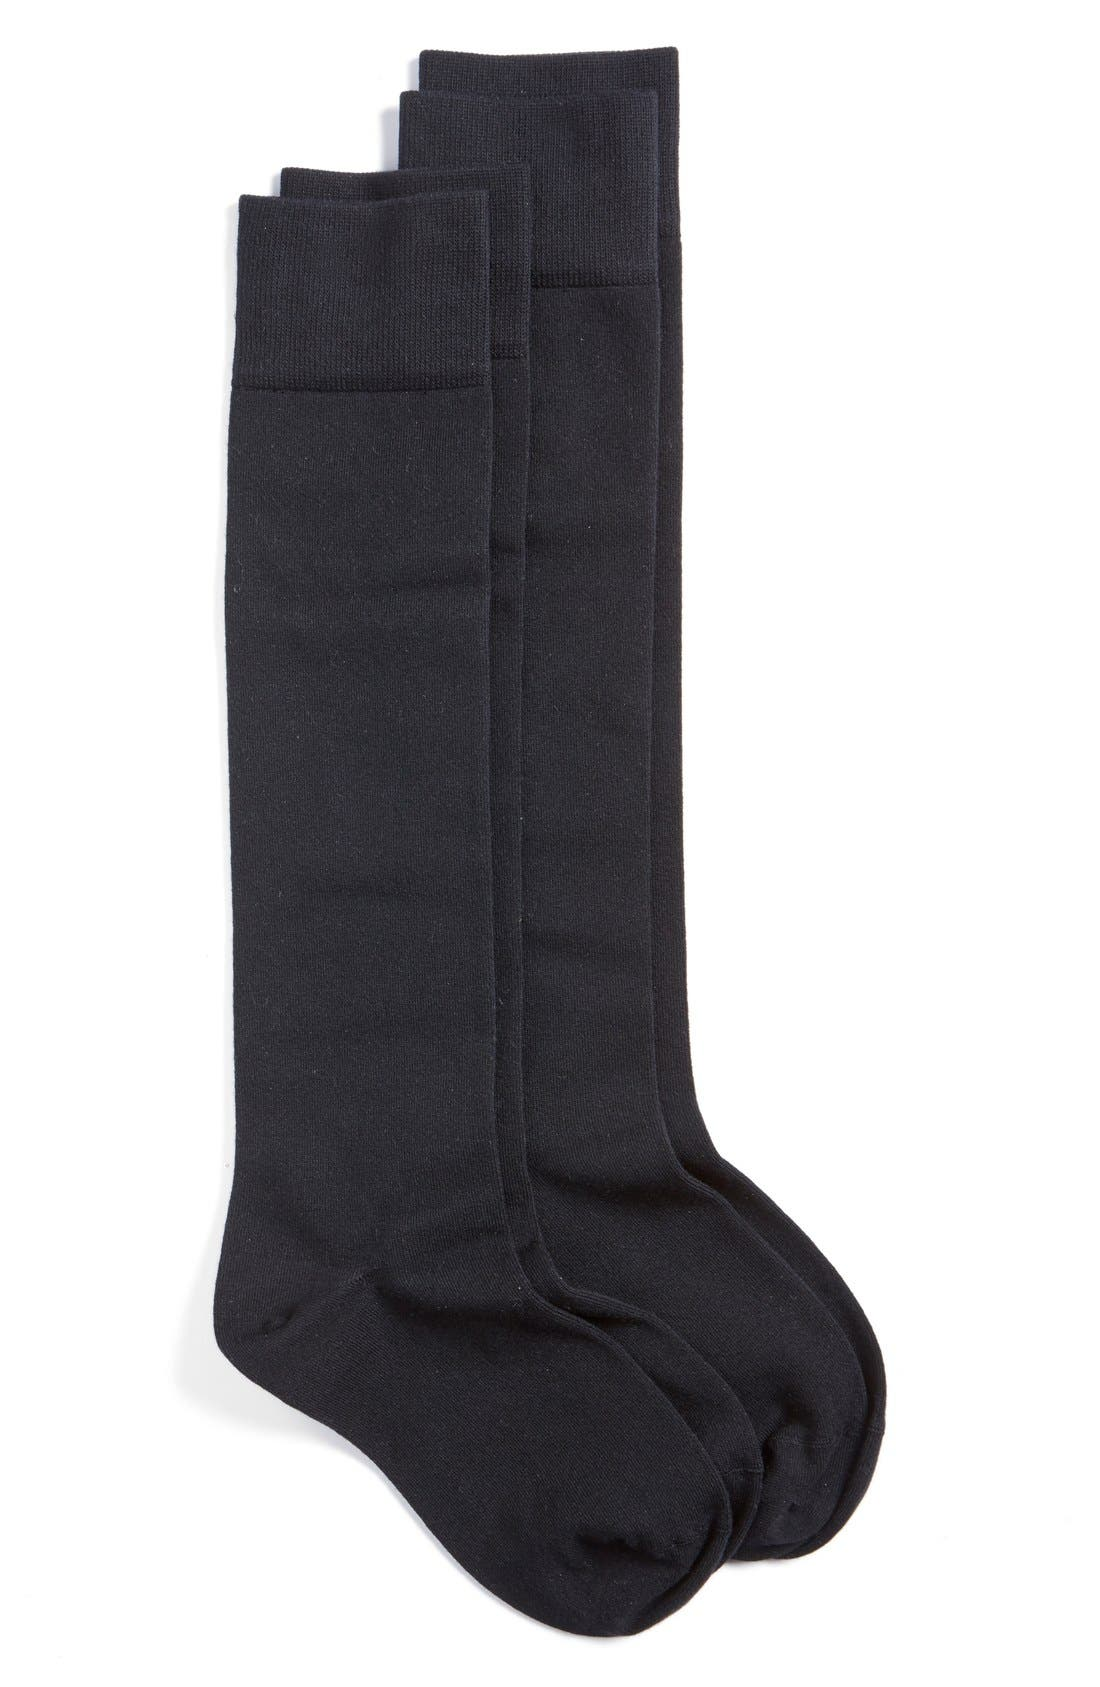 NORDSTROM 2-Pack Knee High Socks, Main, color, BLACK